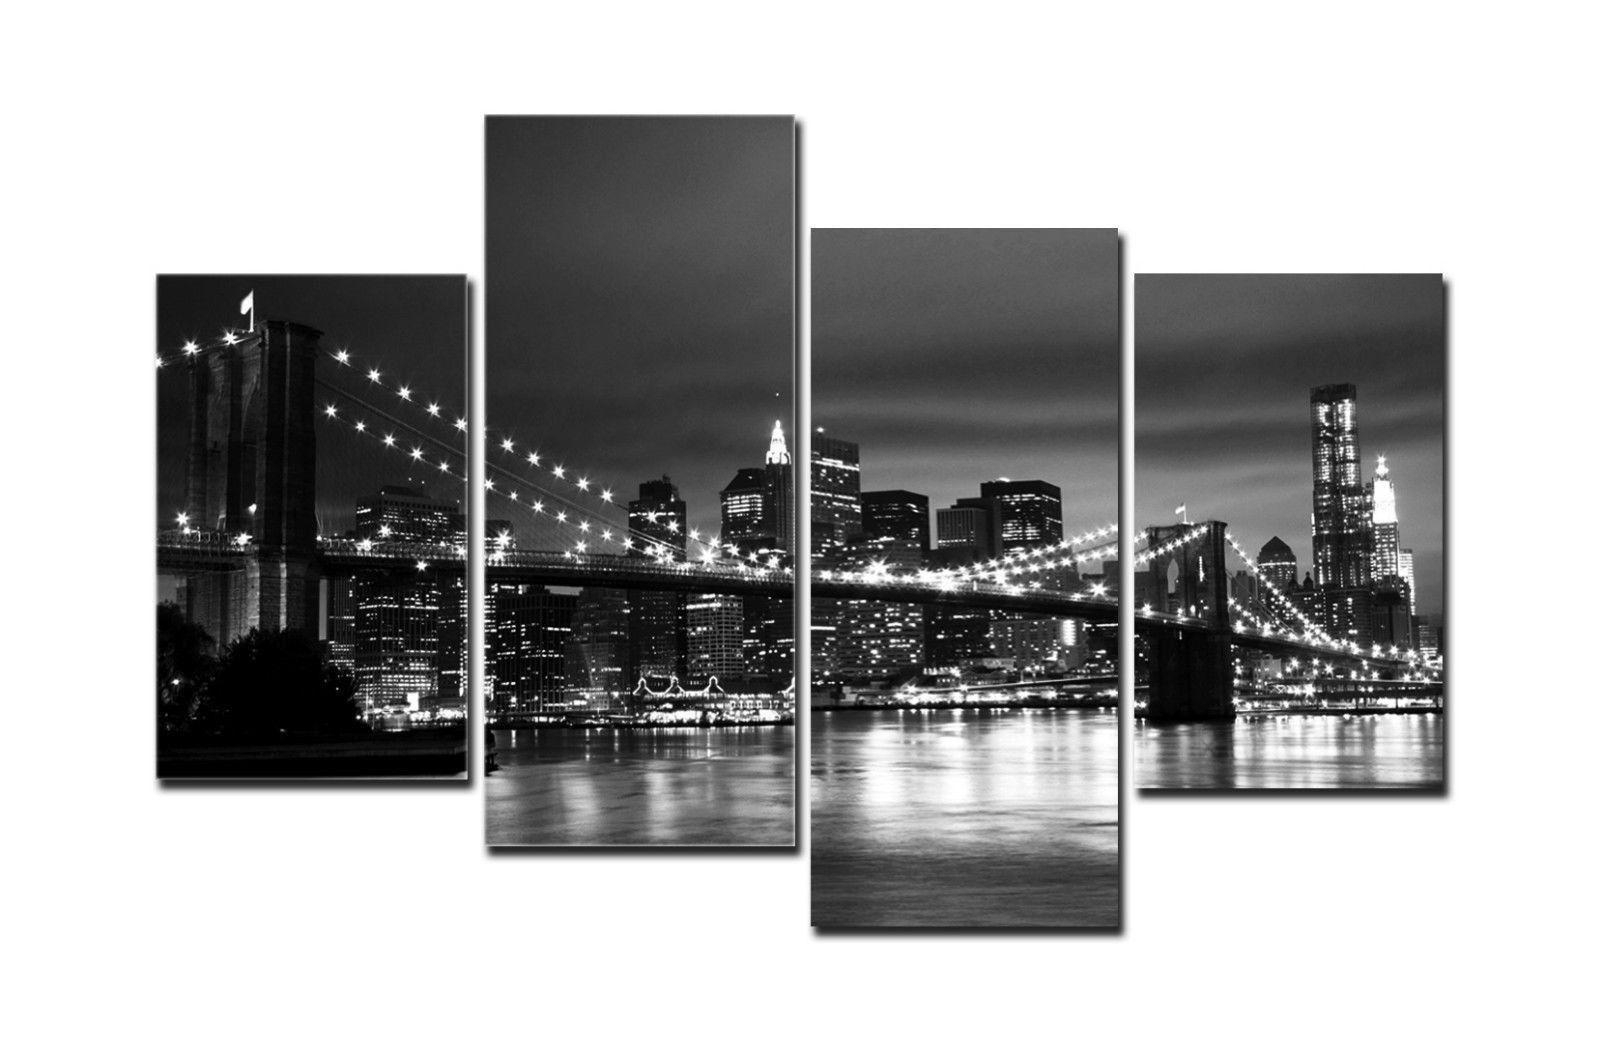 2018 Hd Canvas Print Home Decor Wall Art Painting New York Bridge No Within New York Wall Art (Gallery 2 of 20)